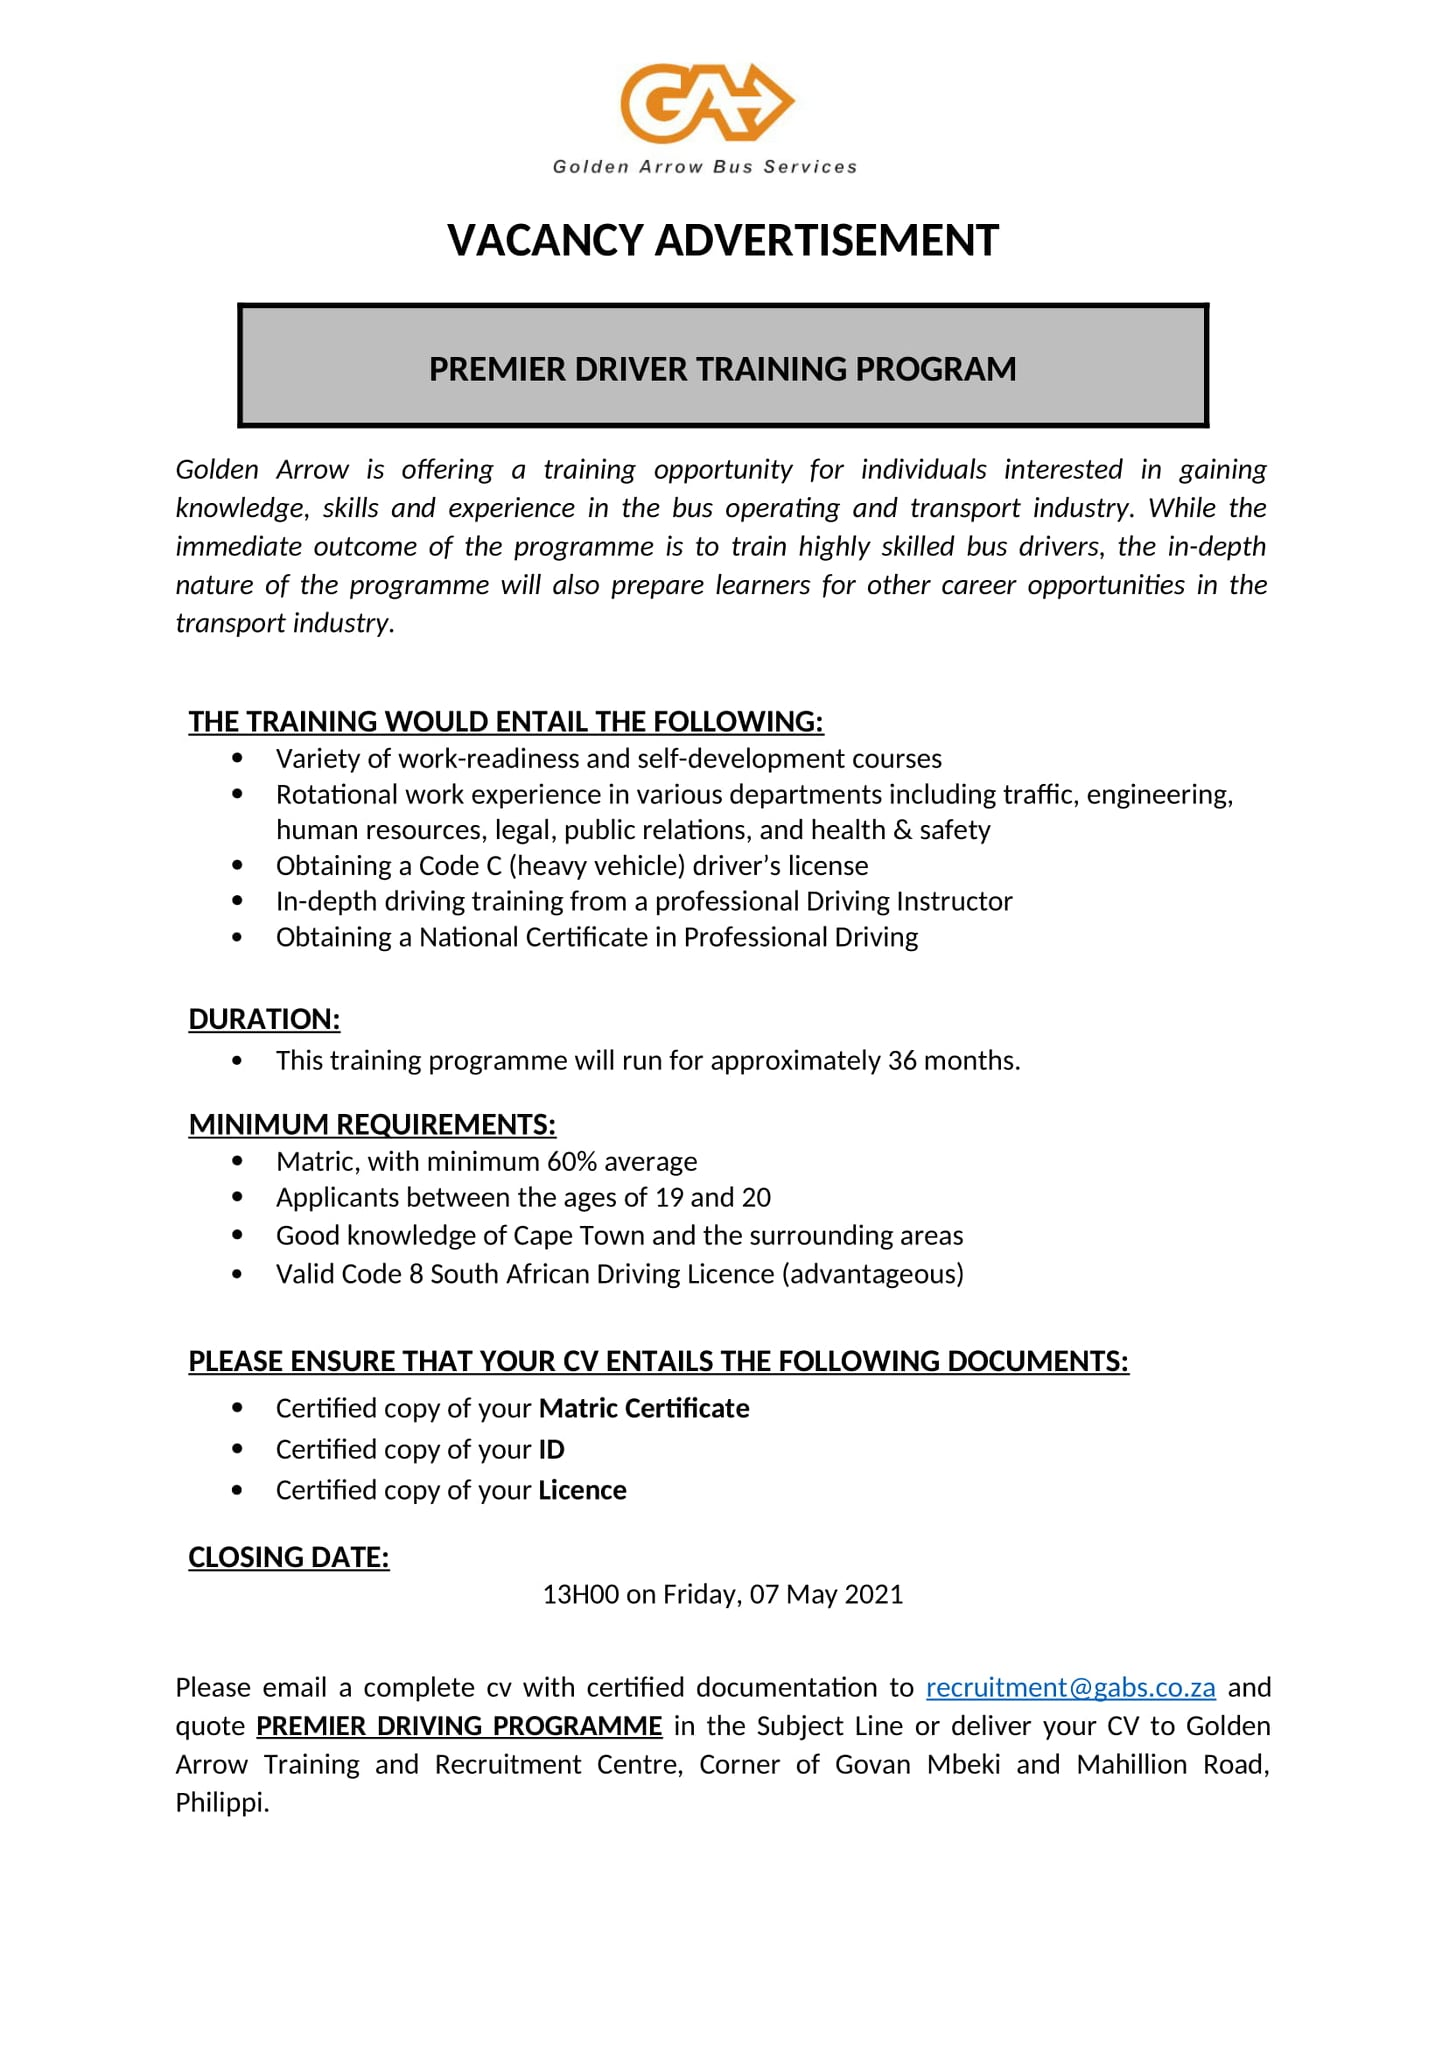 Youth Premier Driver Training Programme